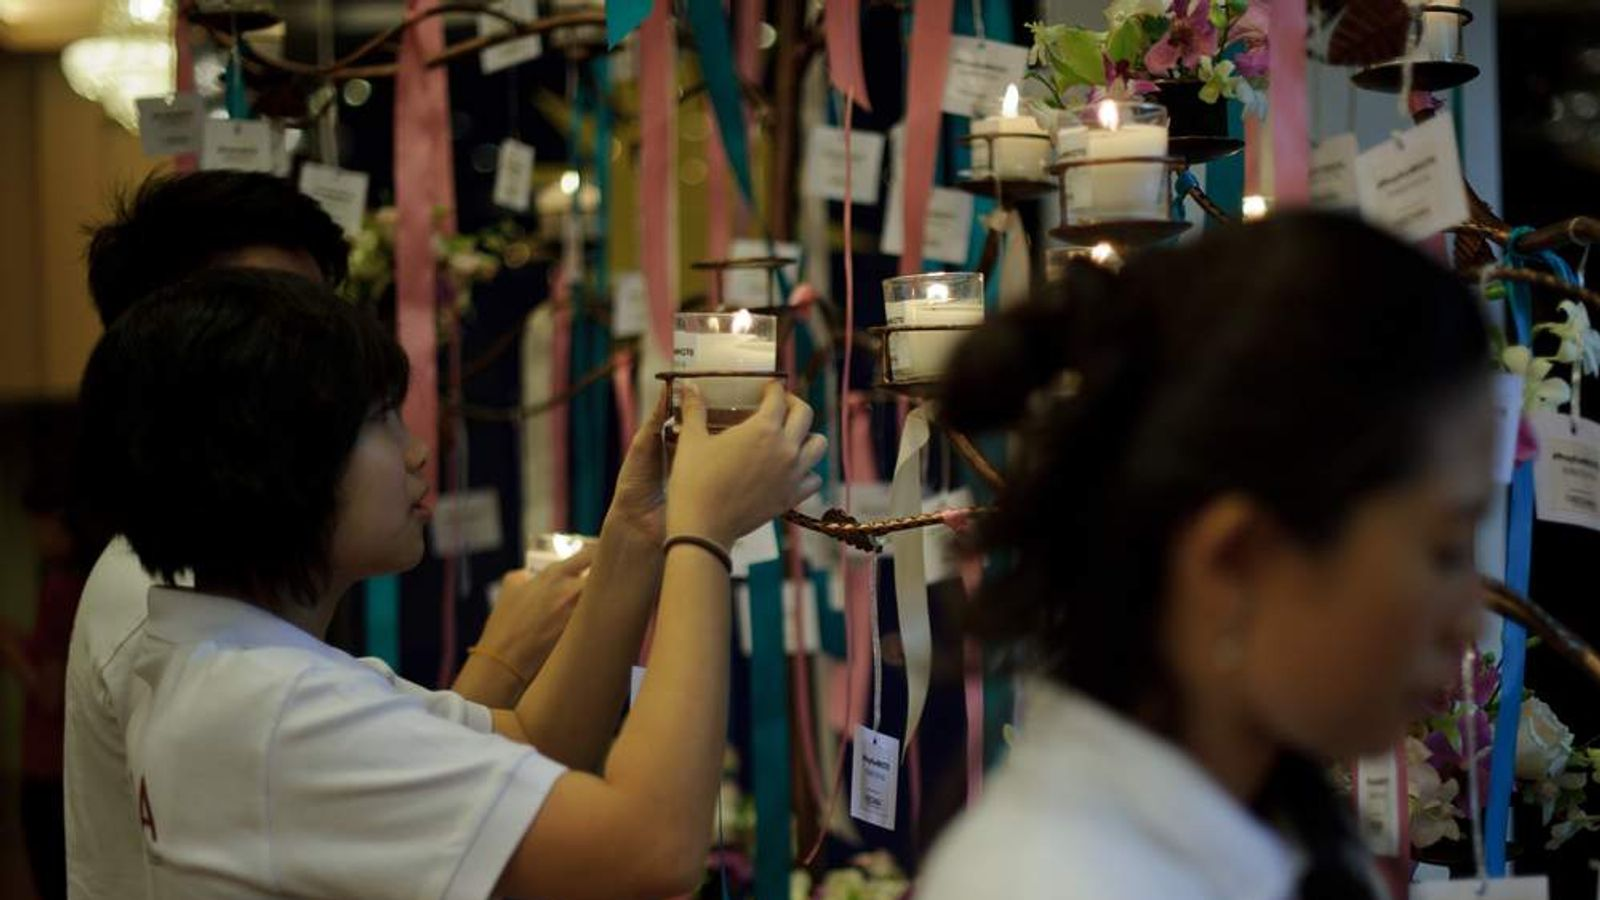 The families of passengers missing on flight MH370 place candles for a prayer vigil in Kuala Lumpur.